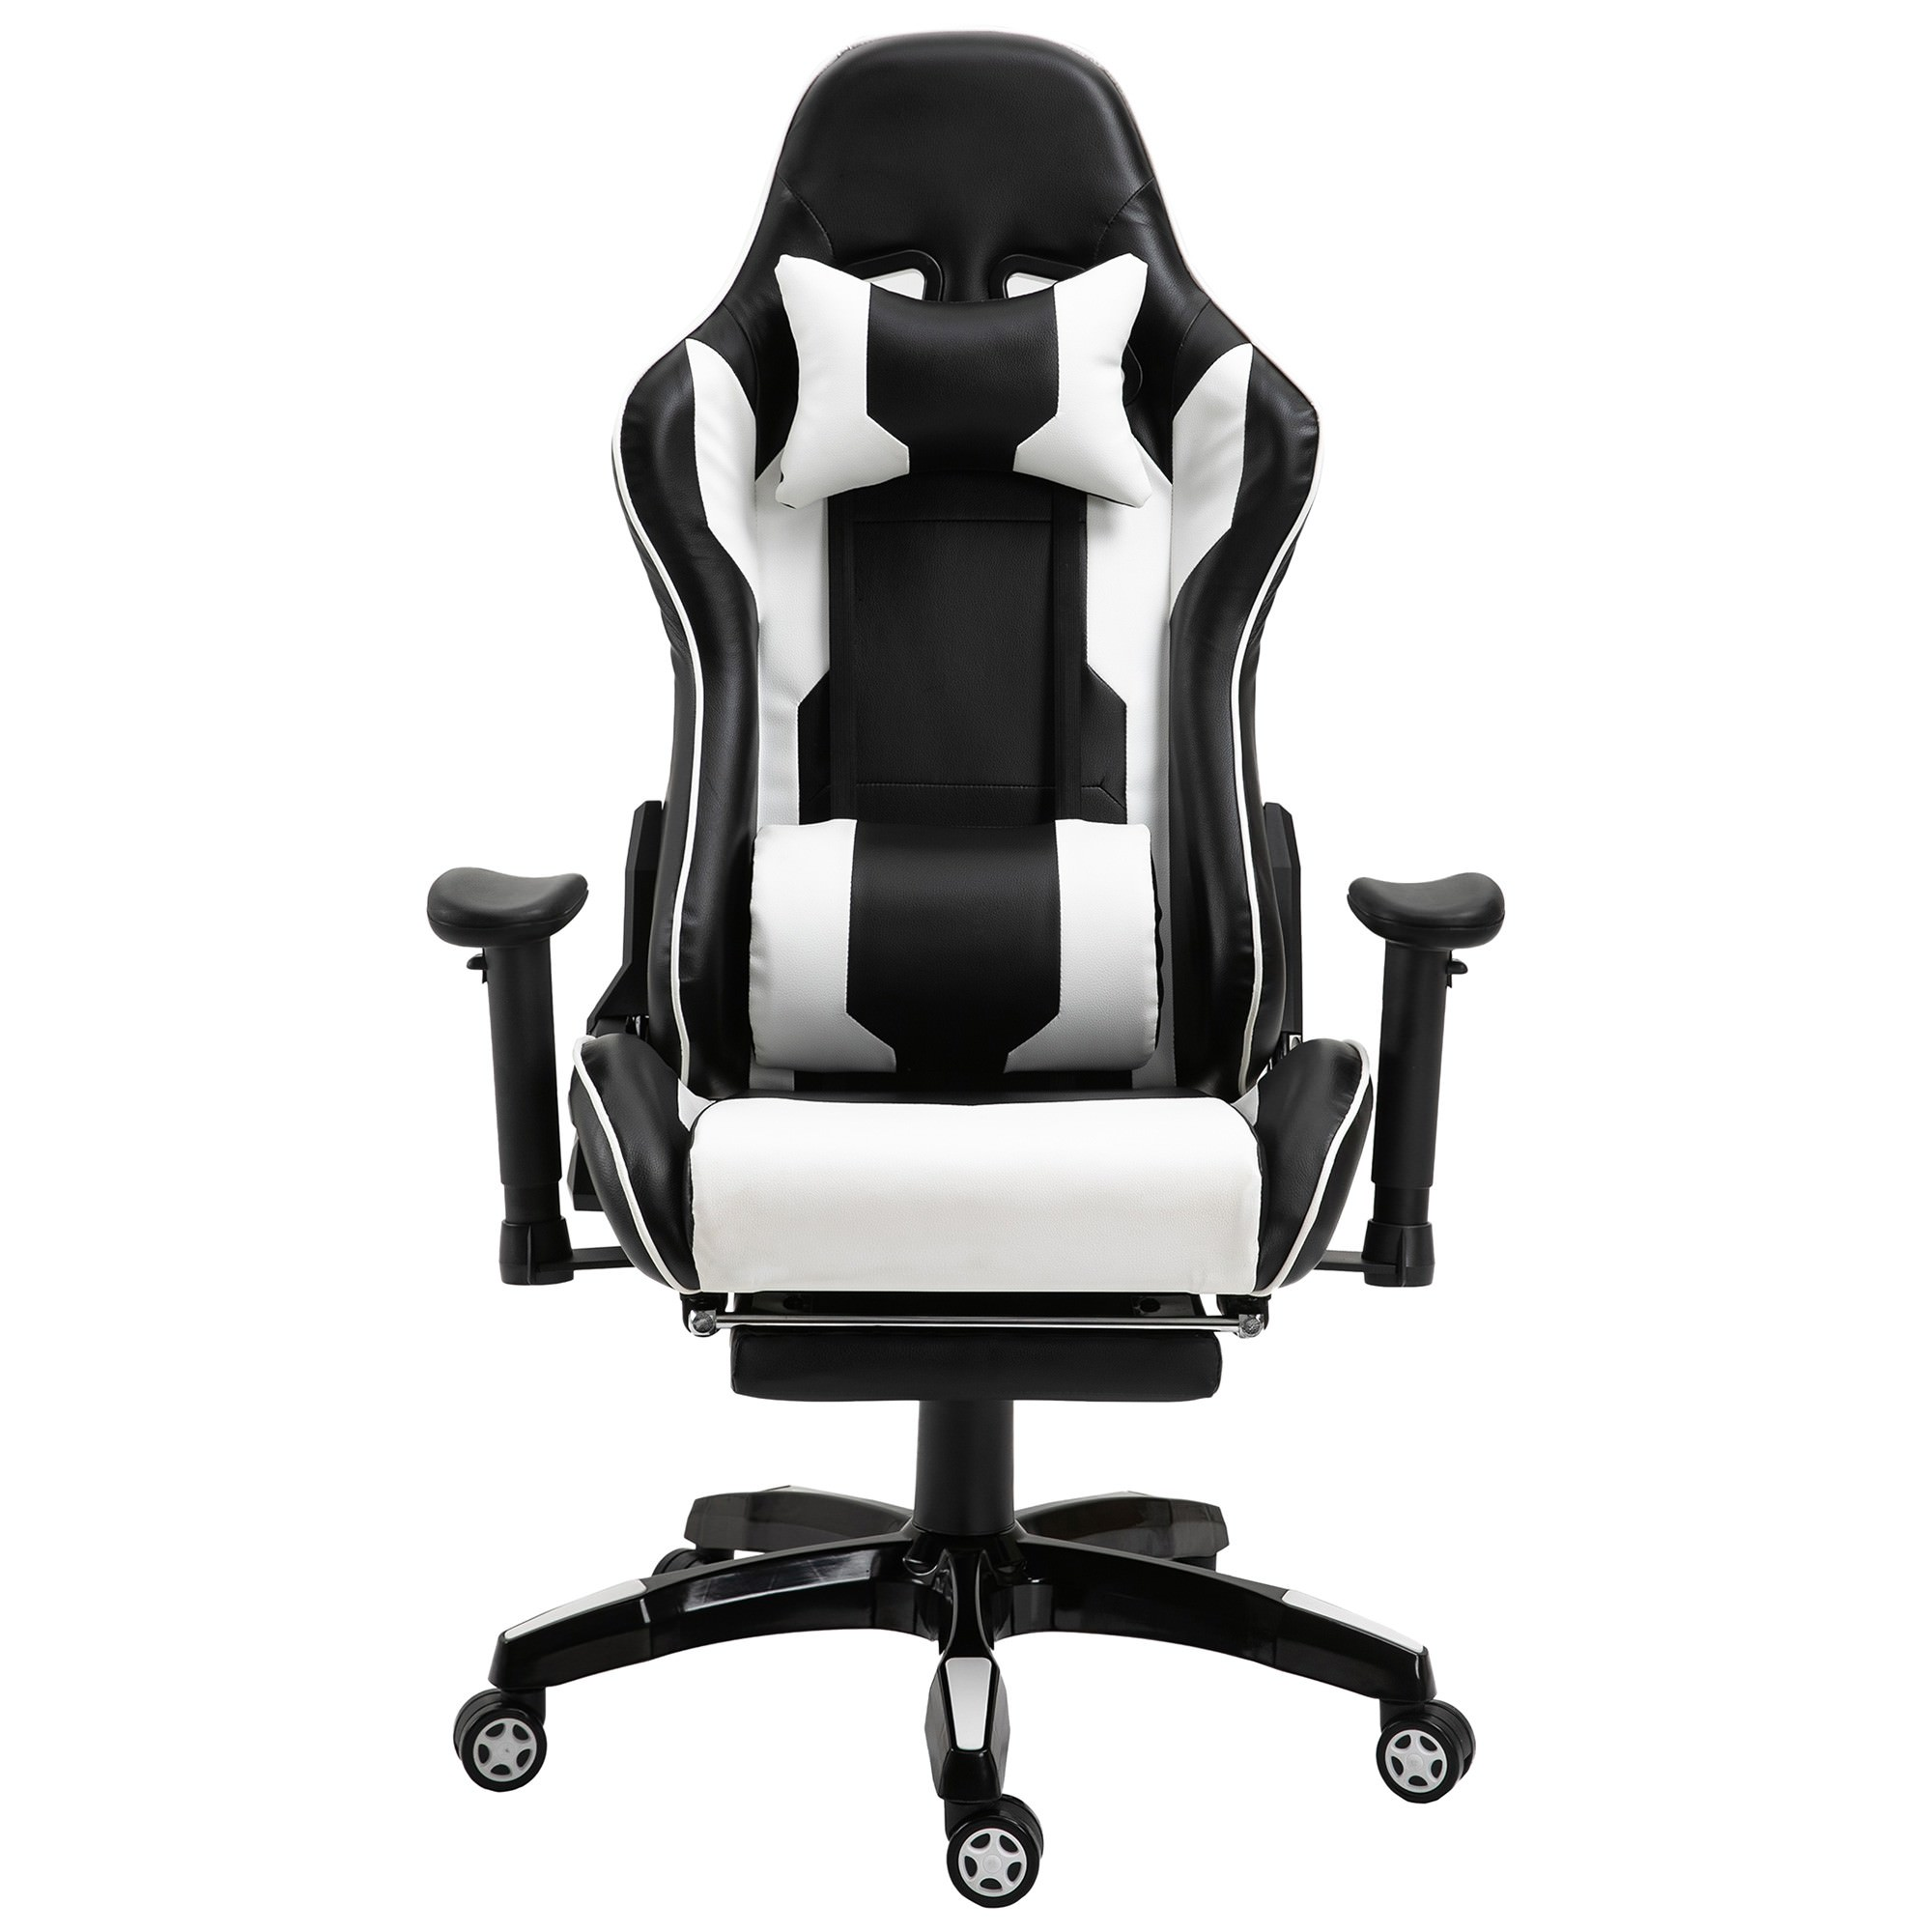 Cybertan PU Leather Gaming Chair with Telescopic Footrest, Black / White